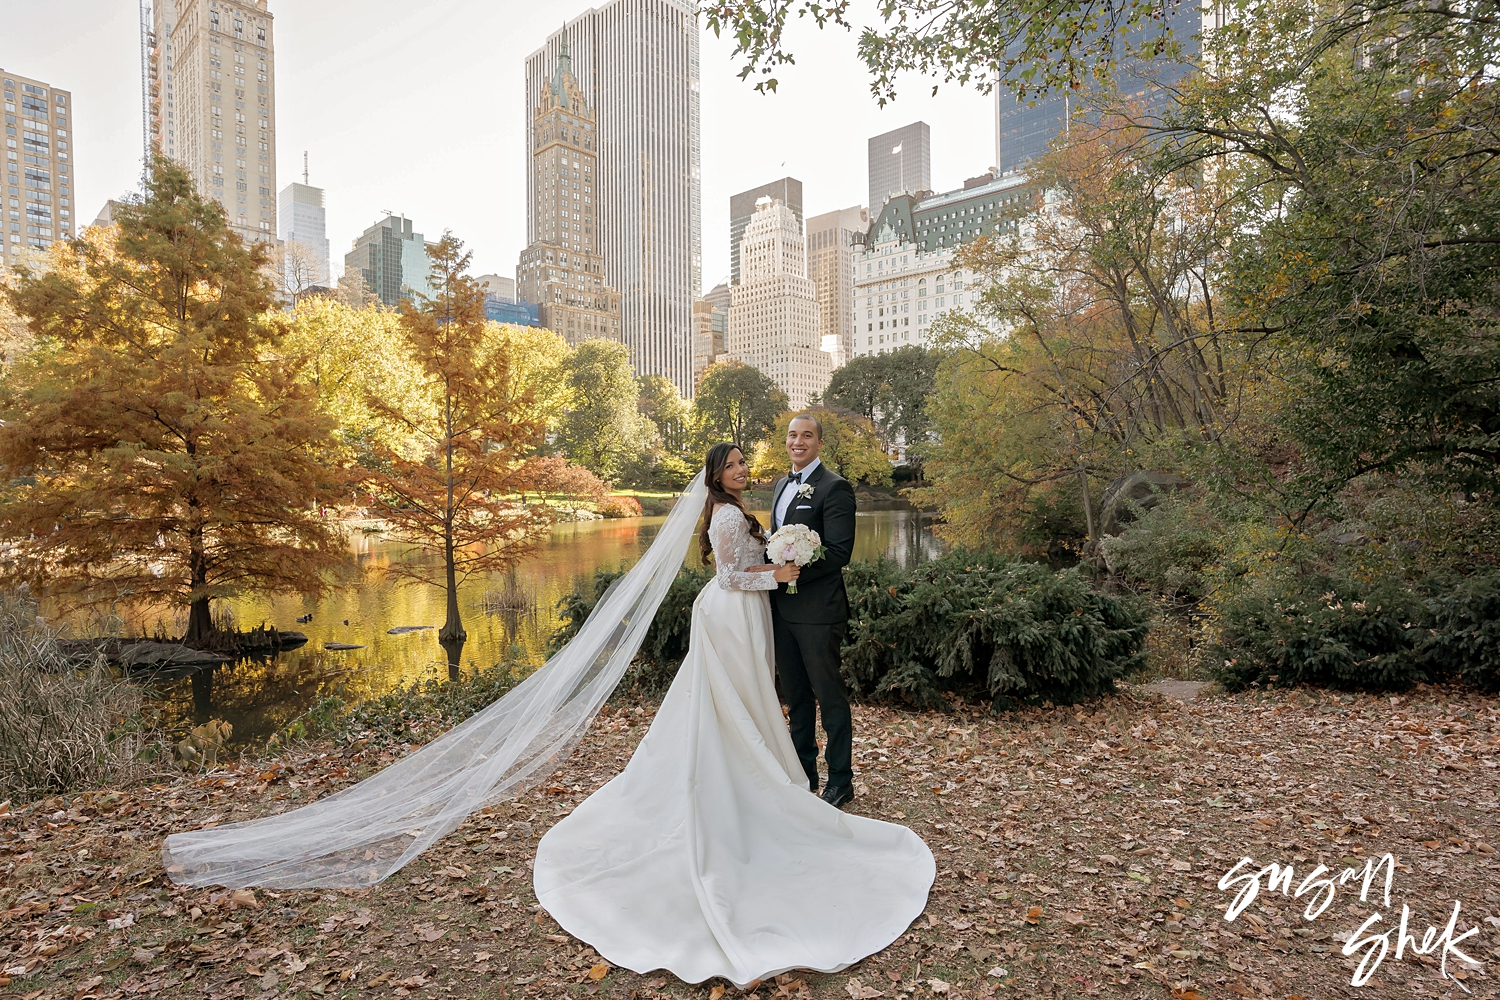 Best Spots for a Central Park Wedding